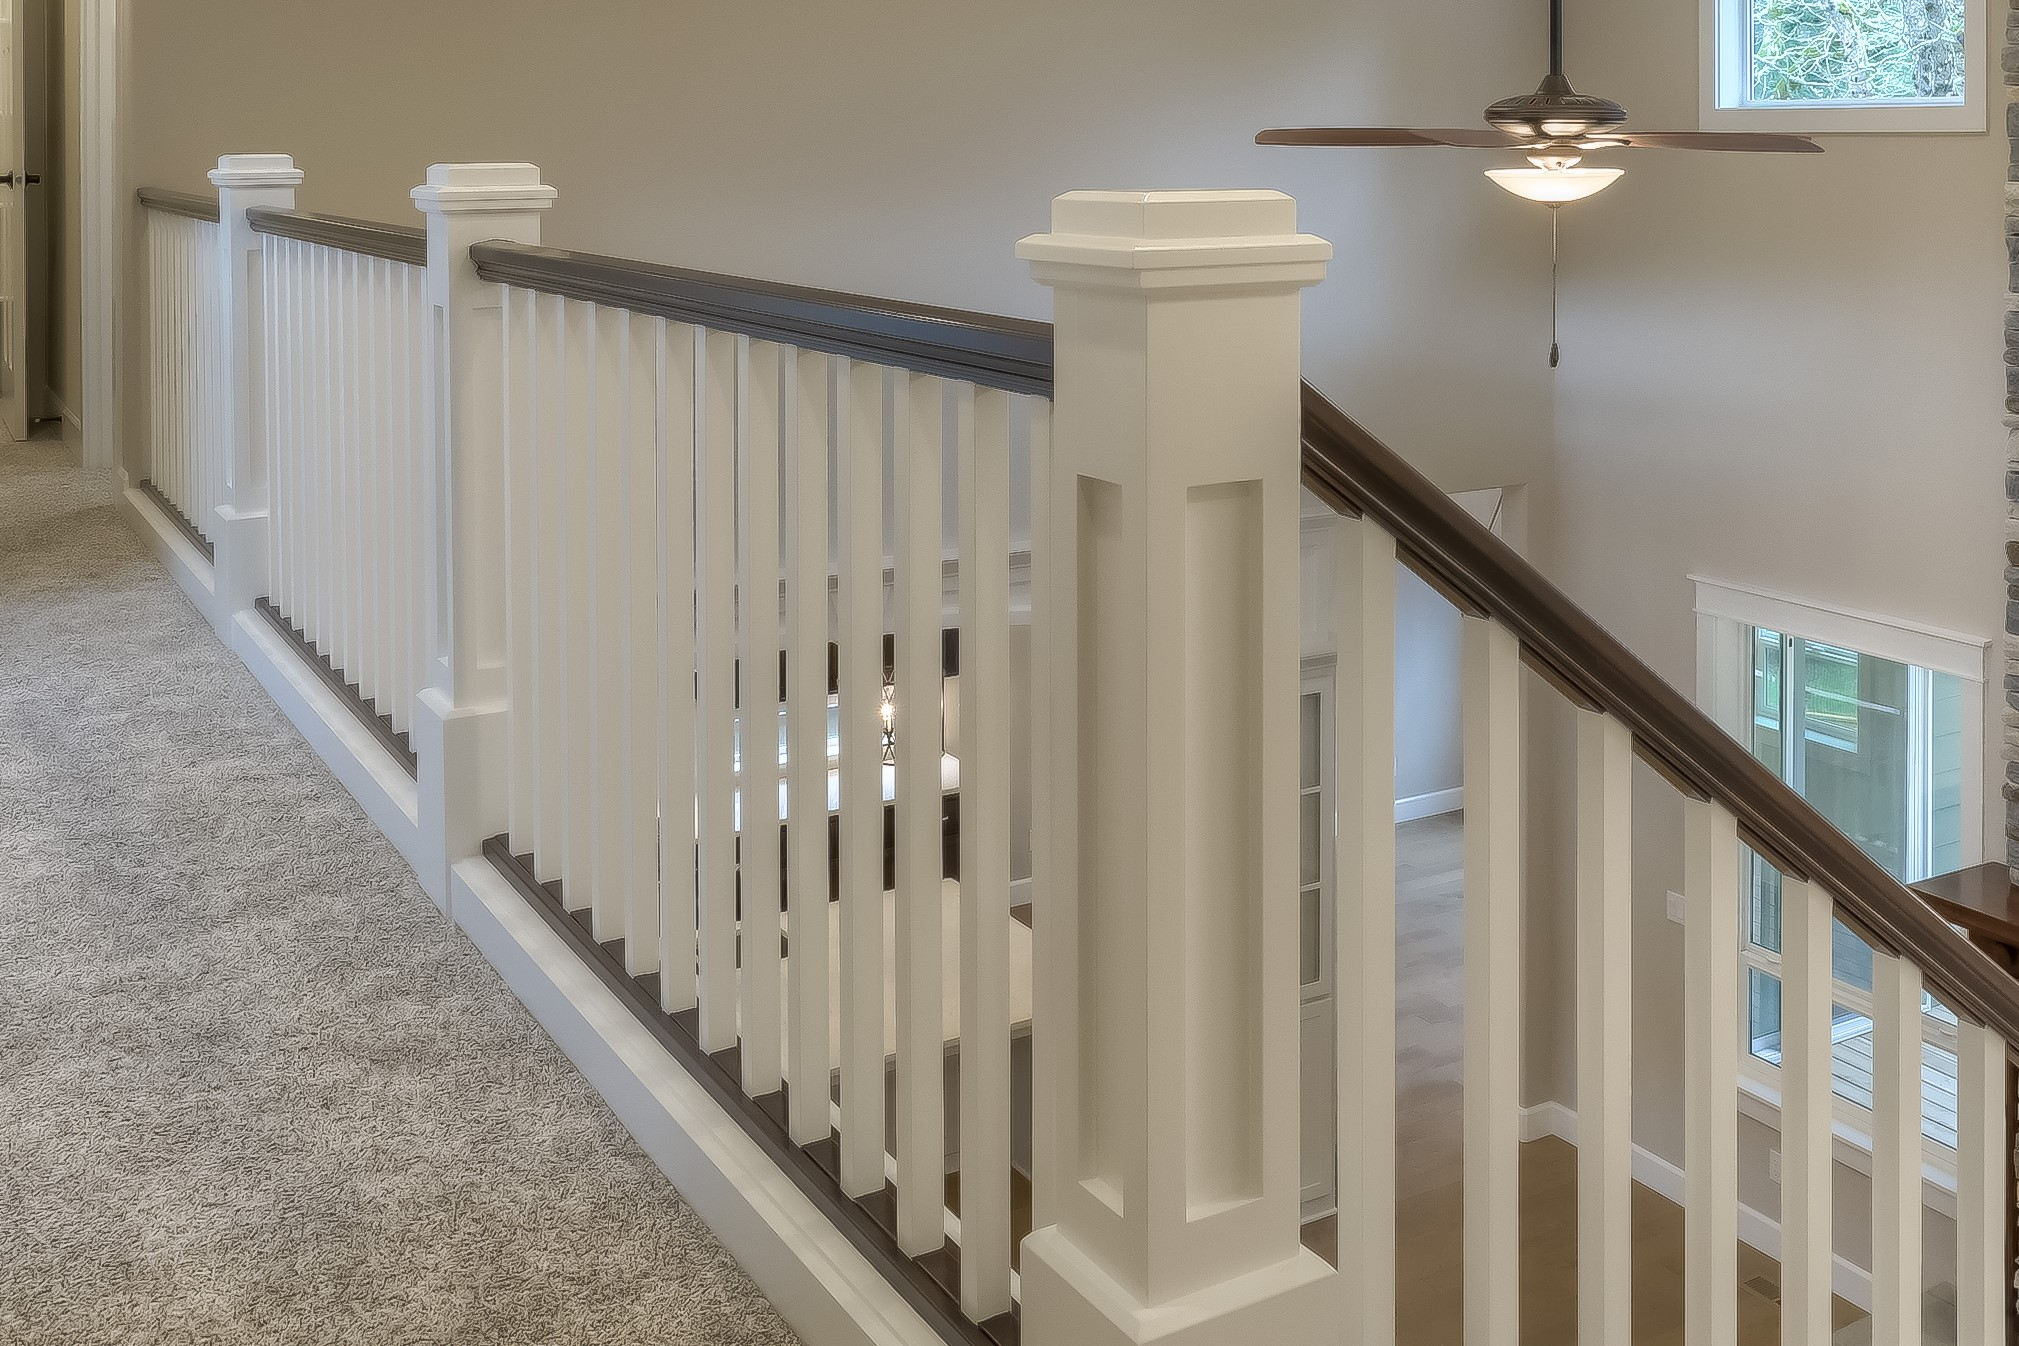 lot 5 stair rail (2)